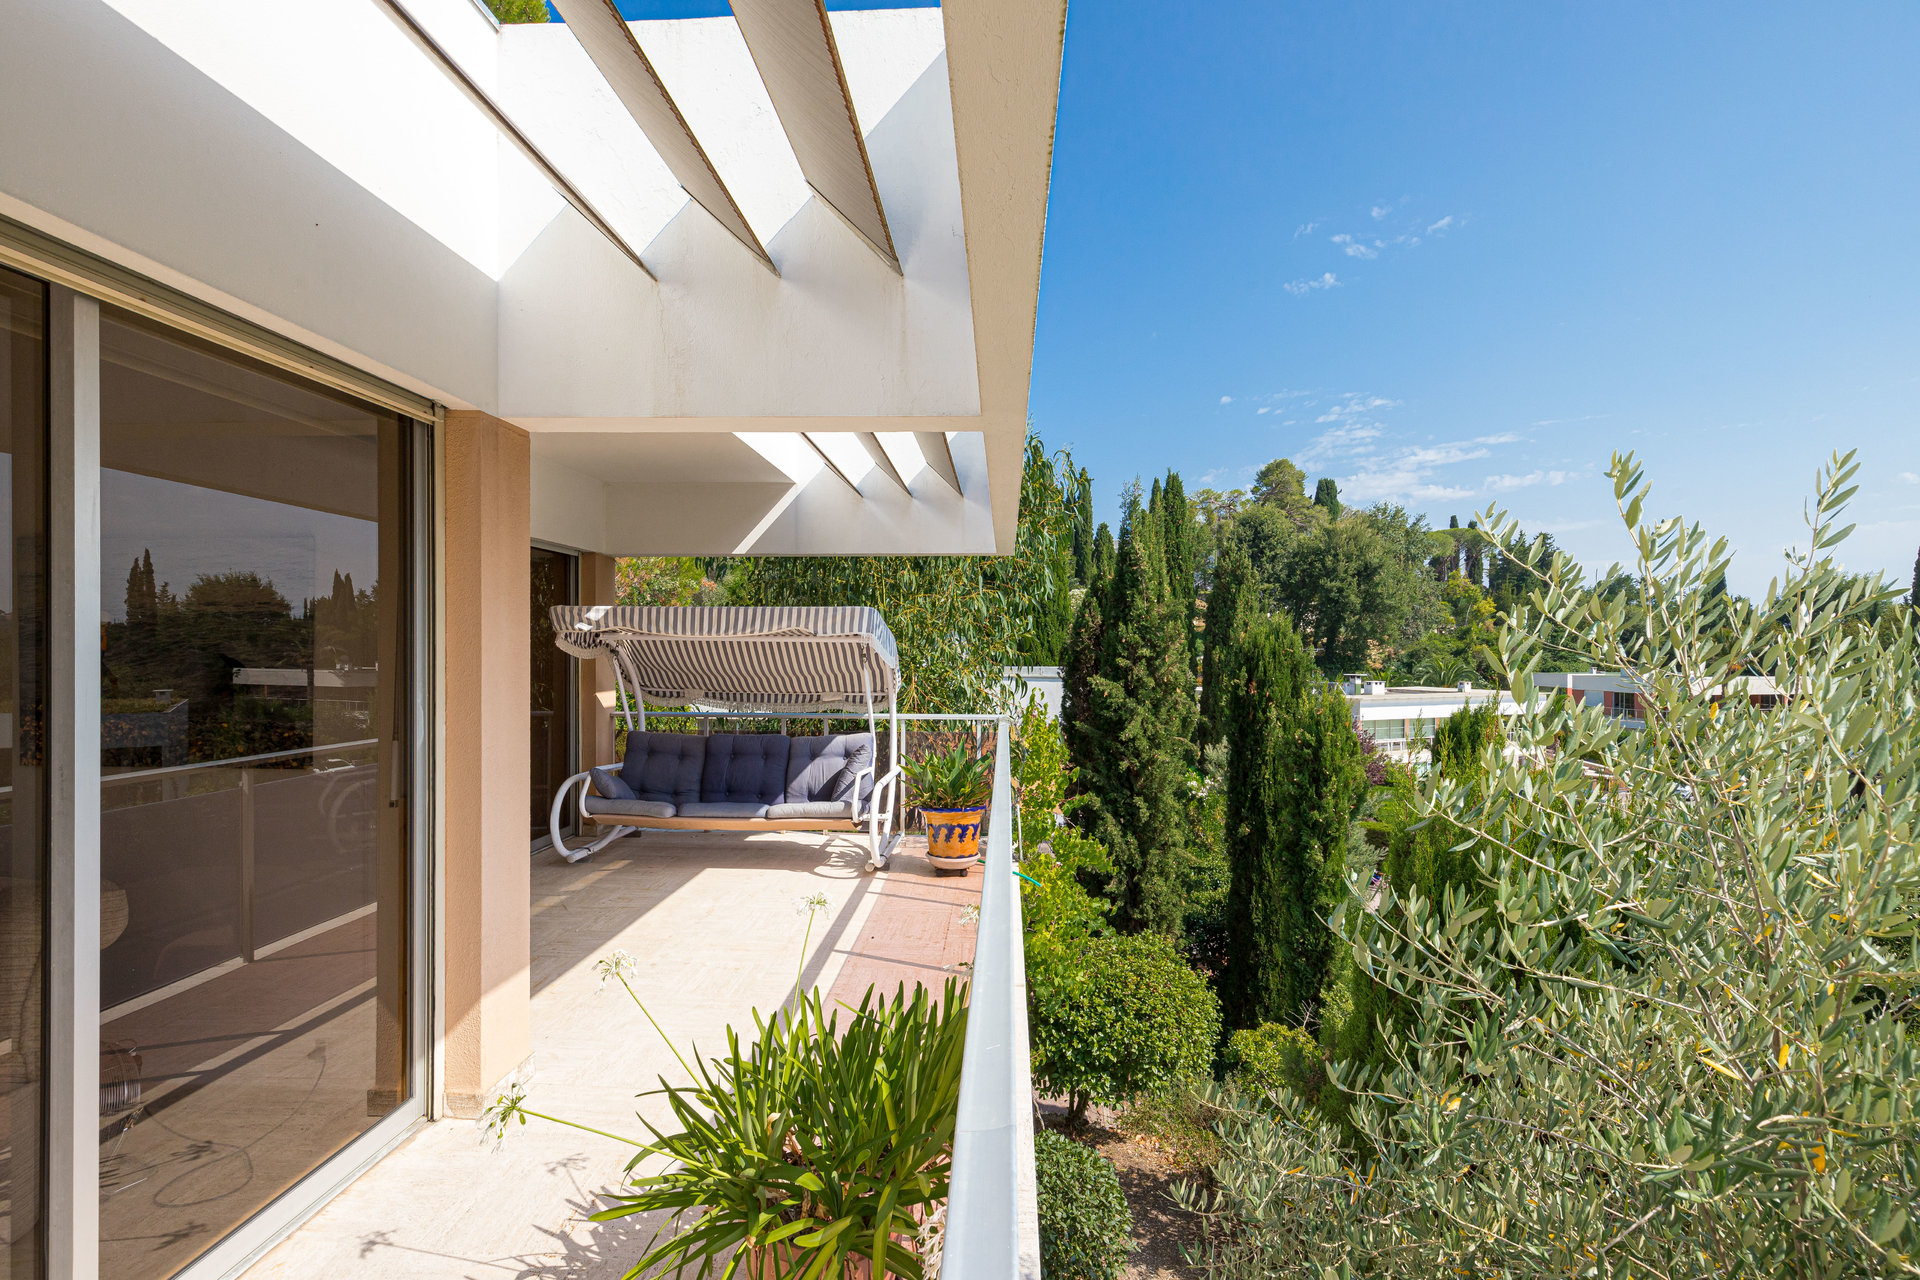 Biot - Californian style villa in guarded residence with pool and tennis.in